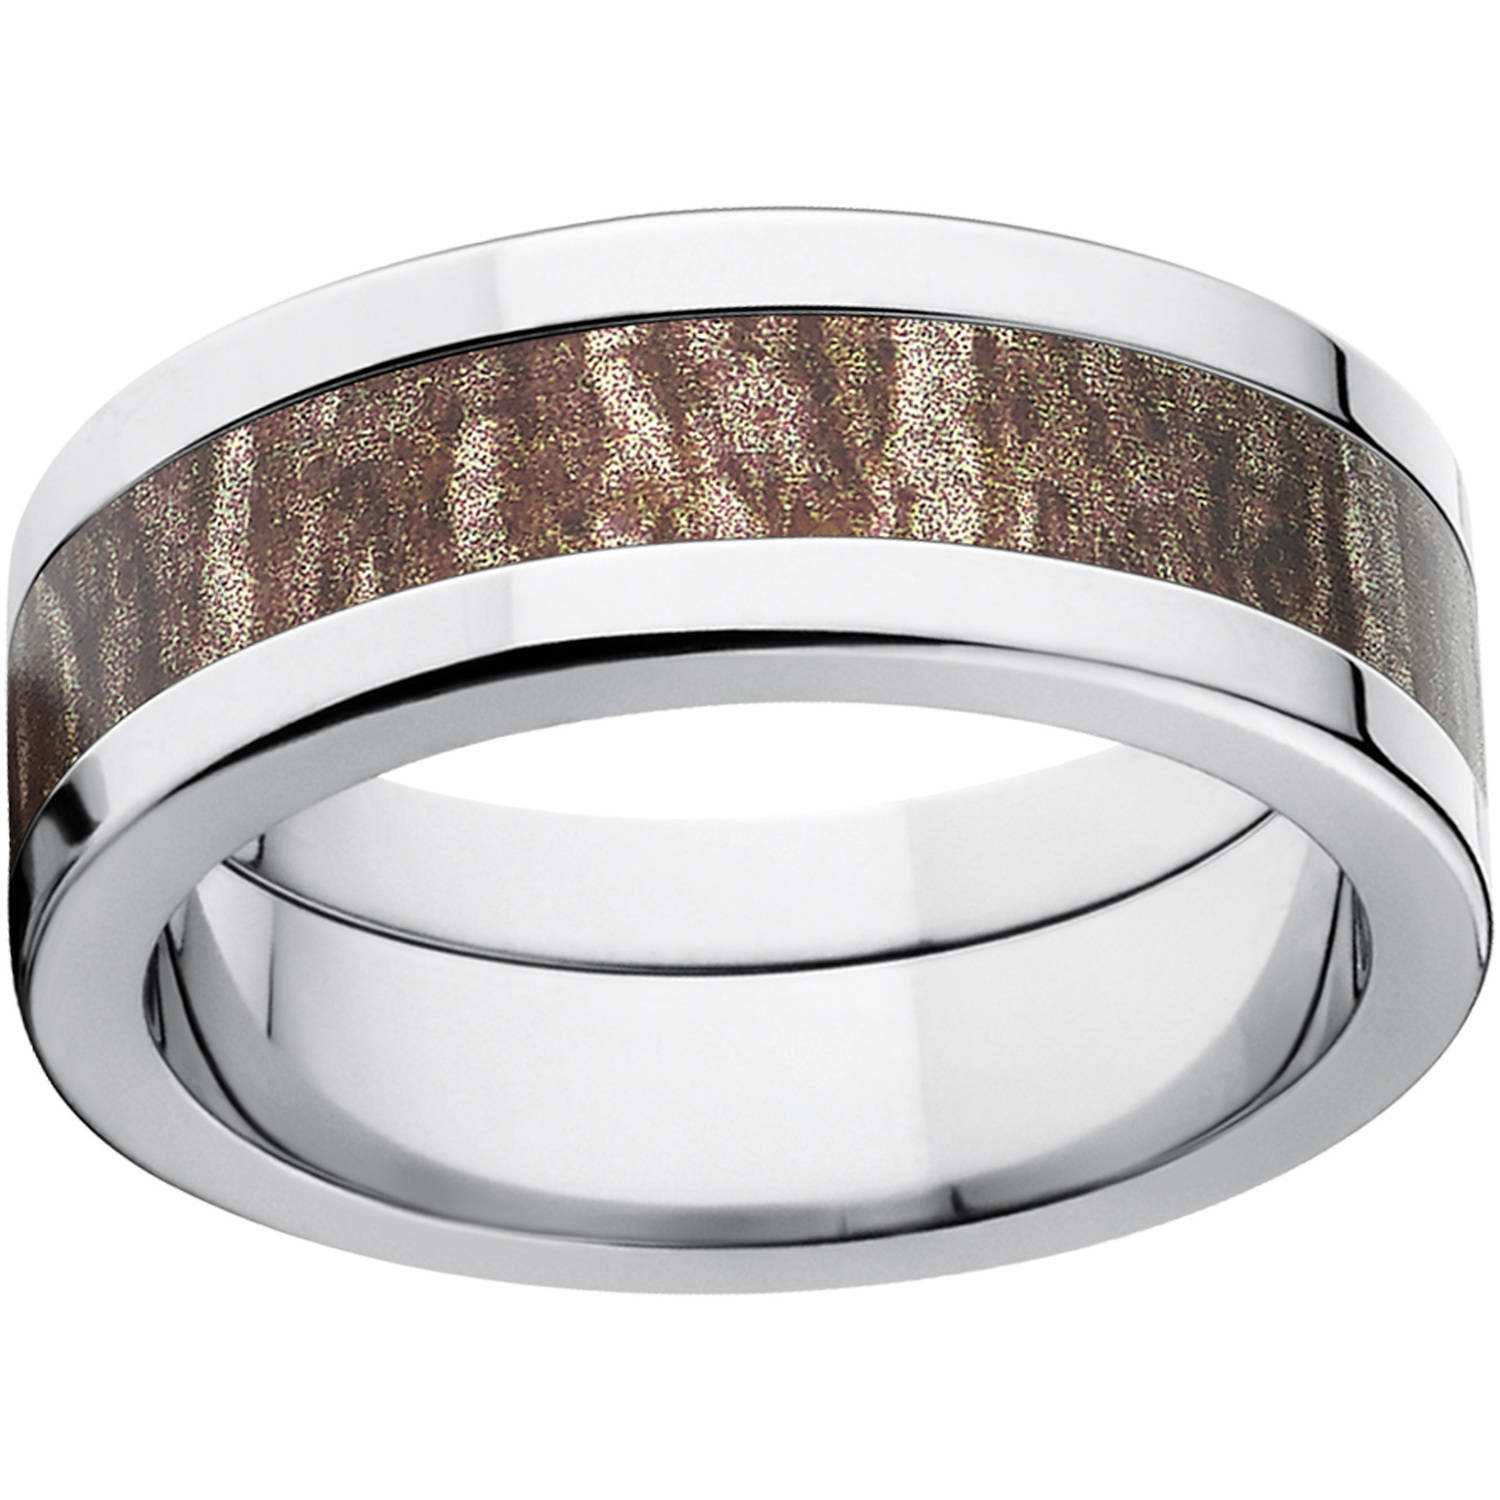 mossy oak wedding ring walmart wedding bands Mossy Oak Bottomland Men S Camo 8mm Stainless Steel Wedding Band With Polished Edges And Deluxe Comfort Fit Walmart Com